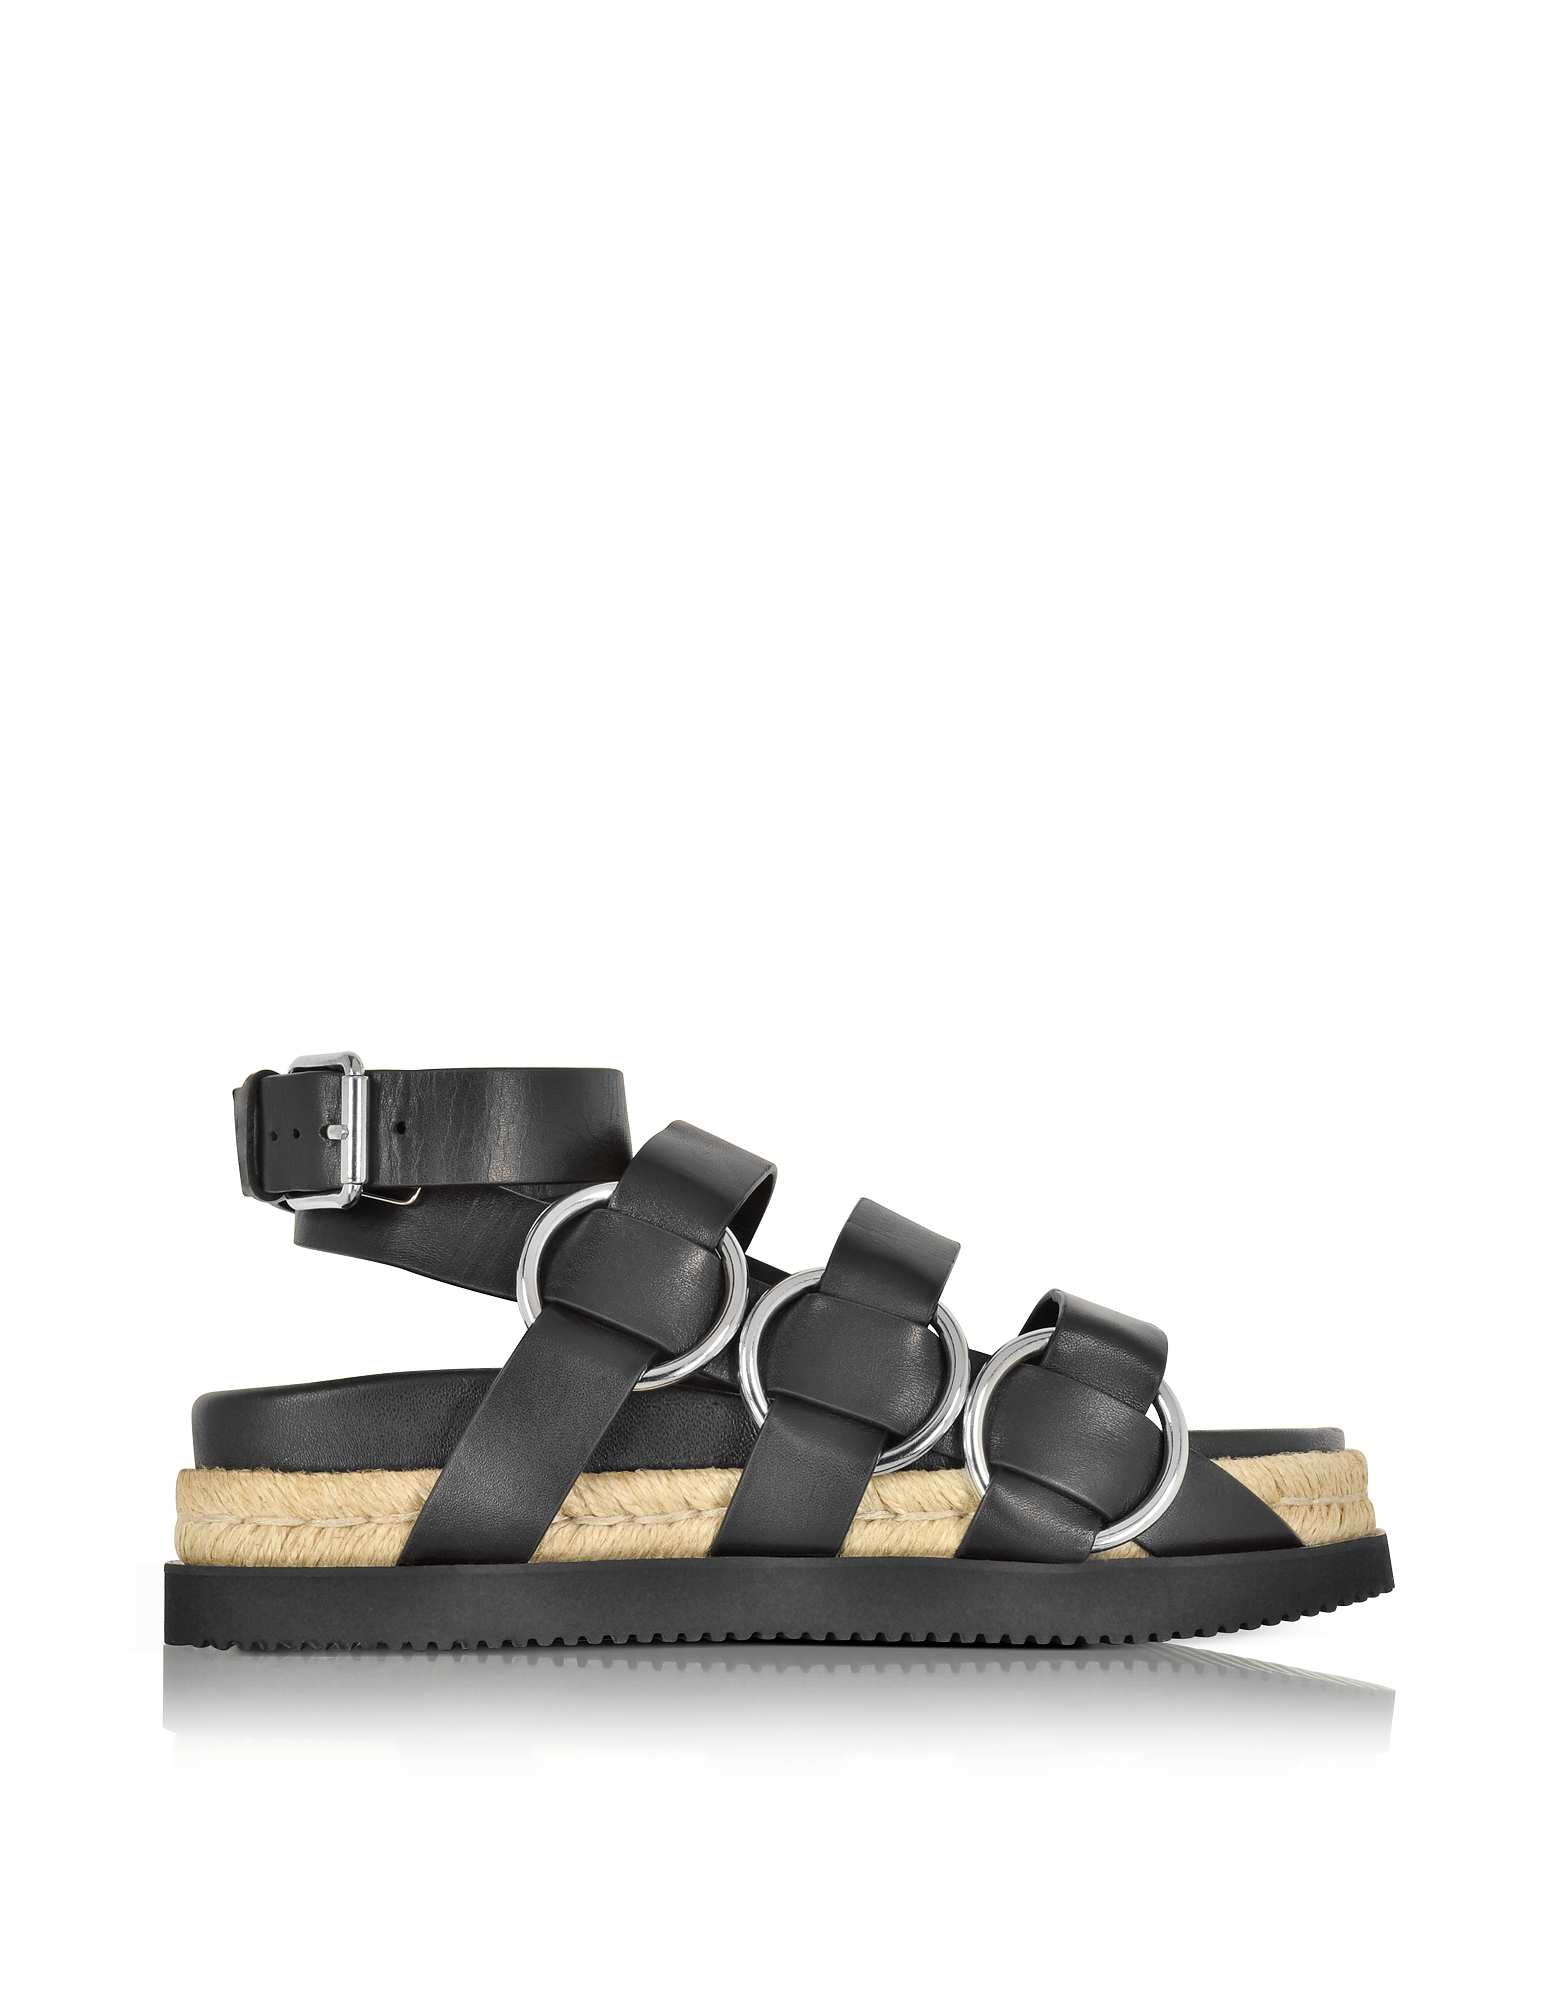 Alexander Wang Shoes, Bess Black Leather Sandal w/Metal Rings